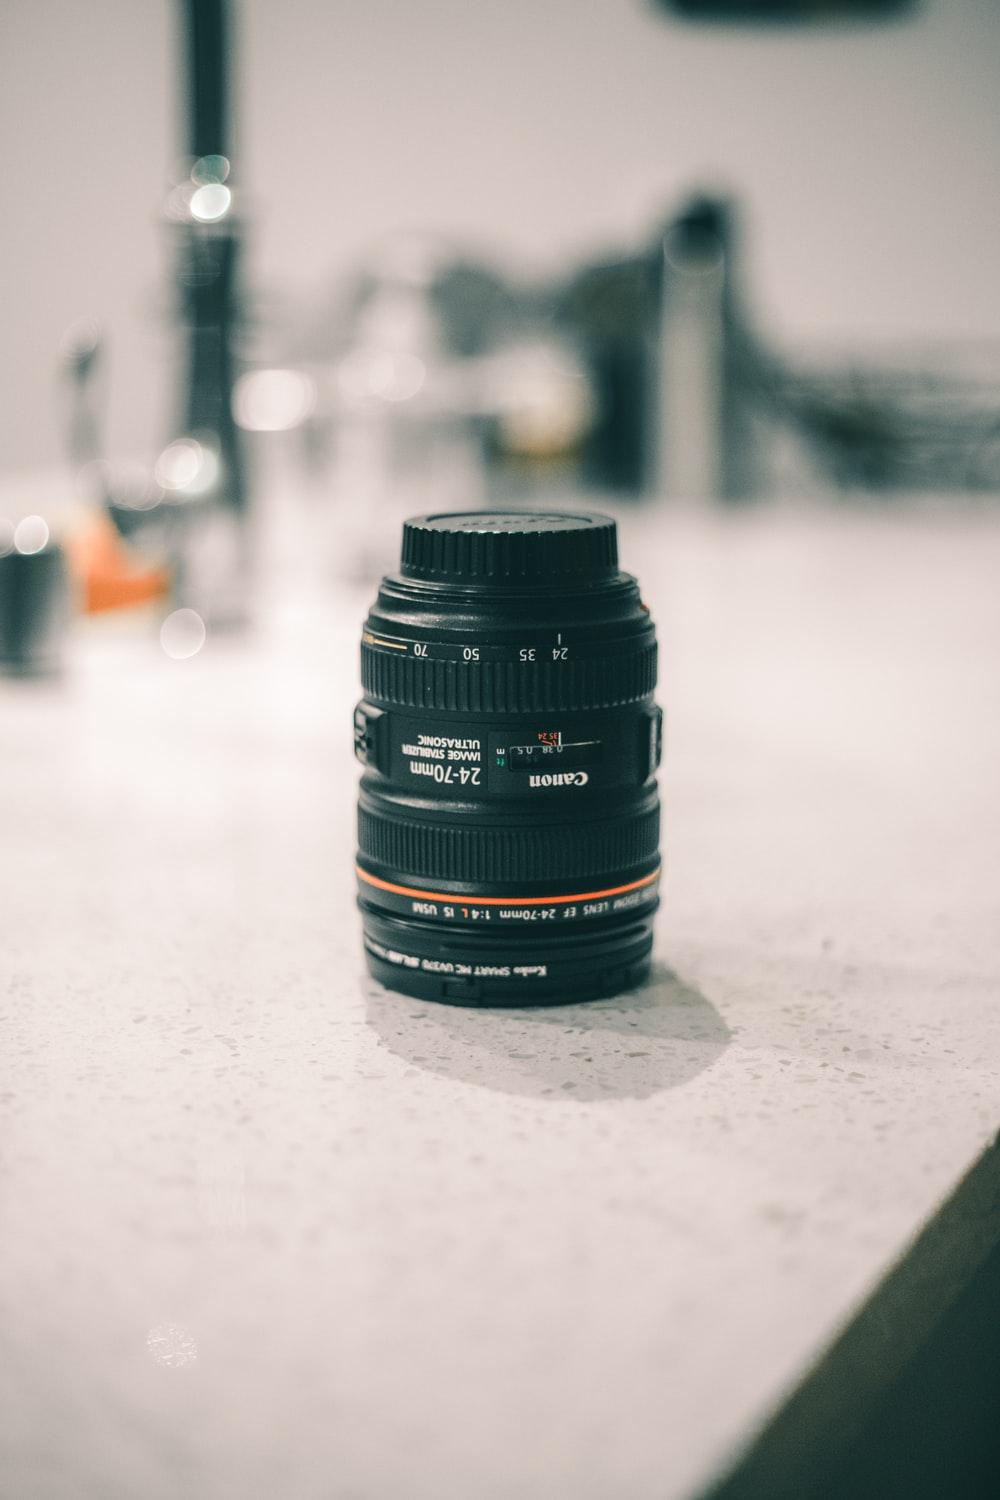 shallow focus photography of camera lens on top of counter